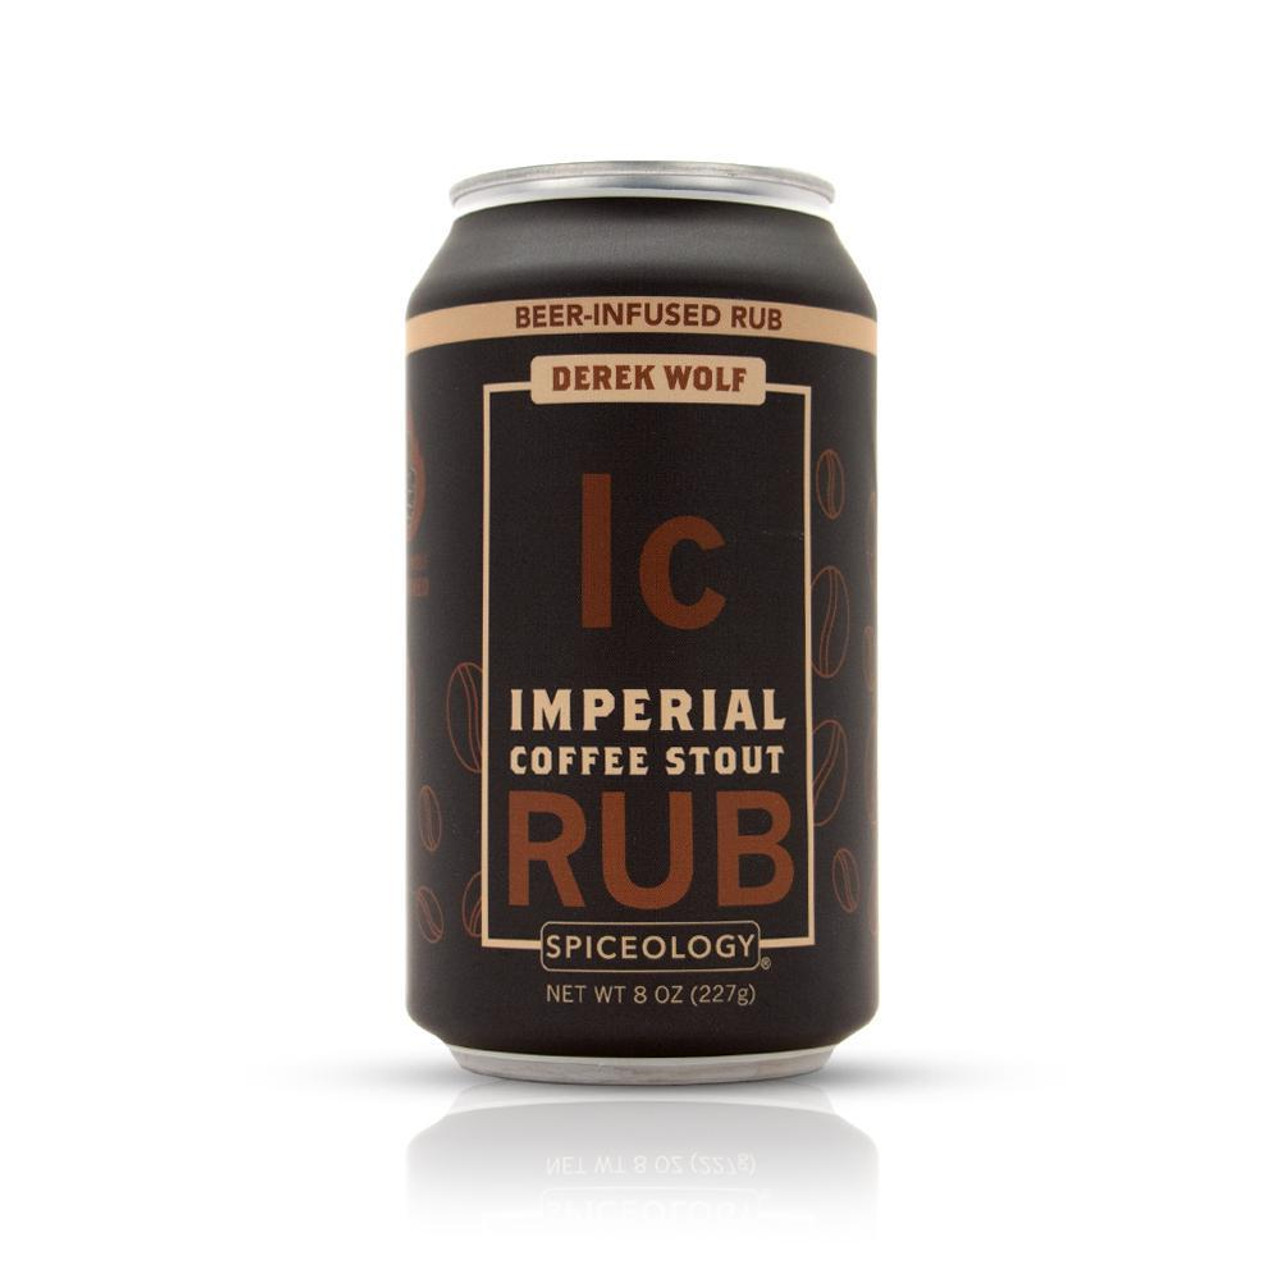 SPICEOLOGY BEER INFUSED RUB - IMPERIAL COFFEE STOUT RUB